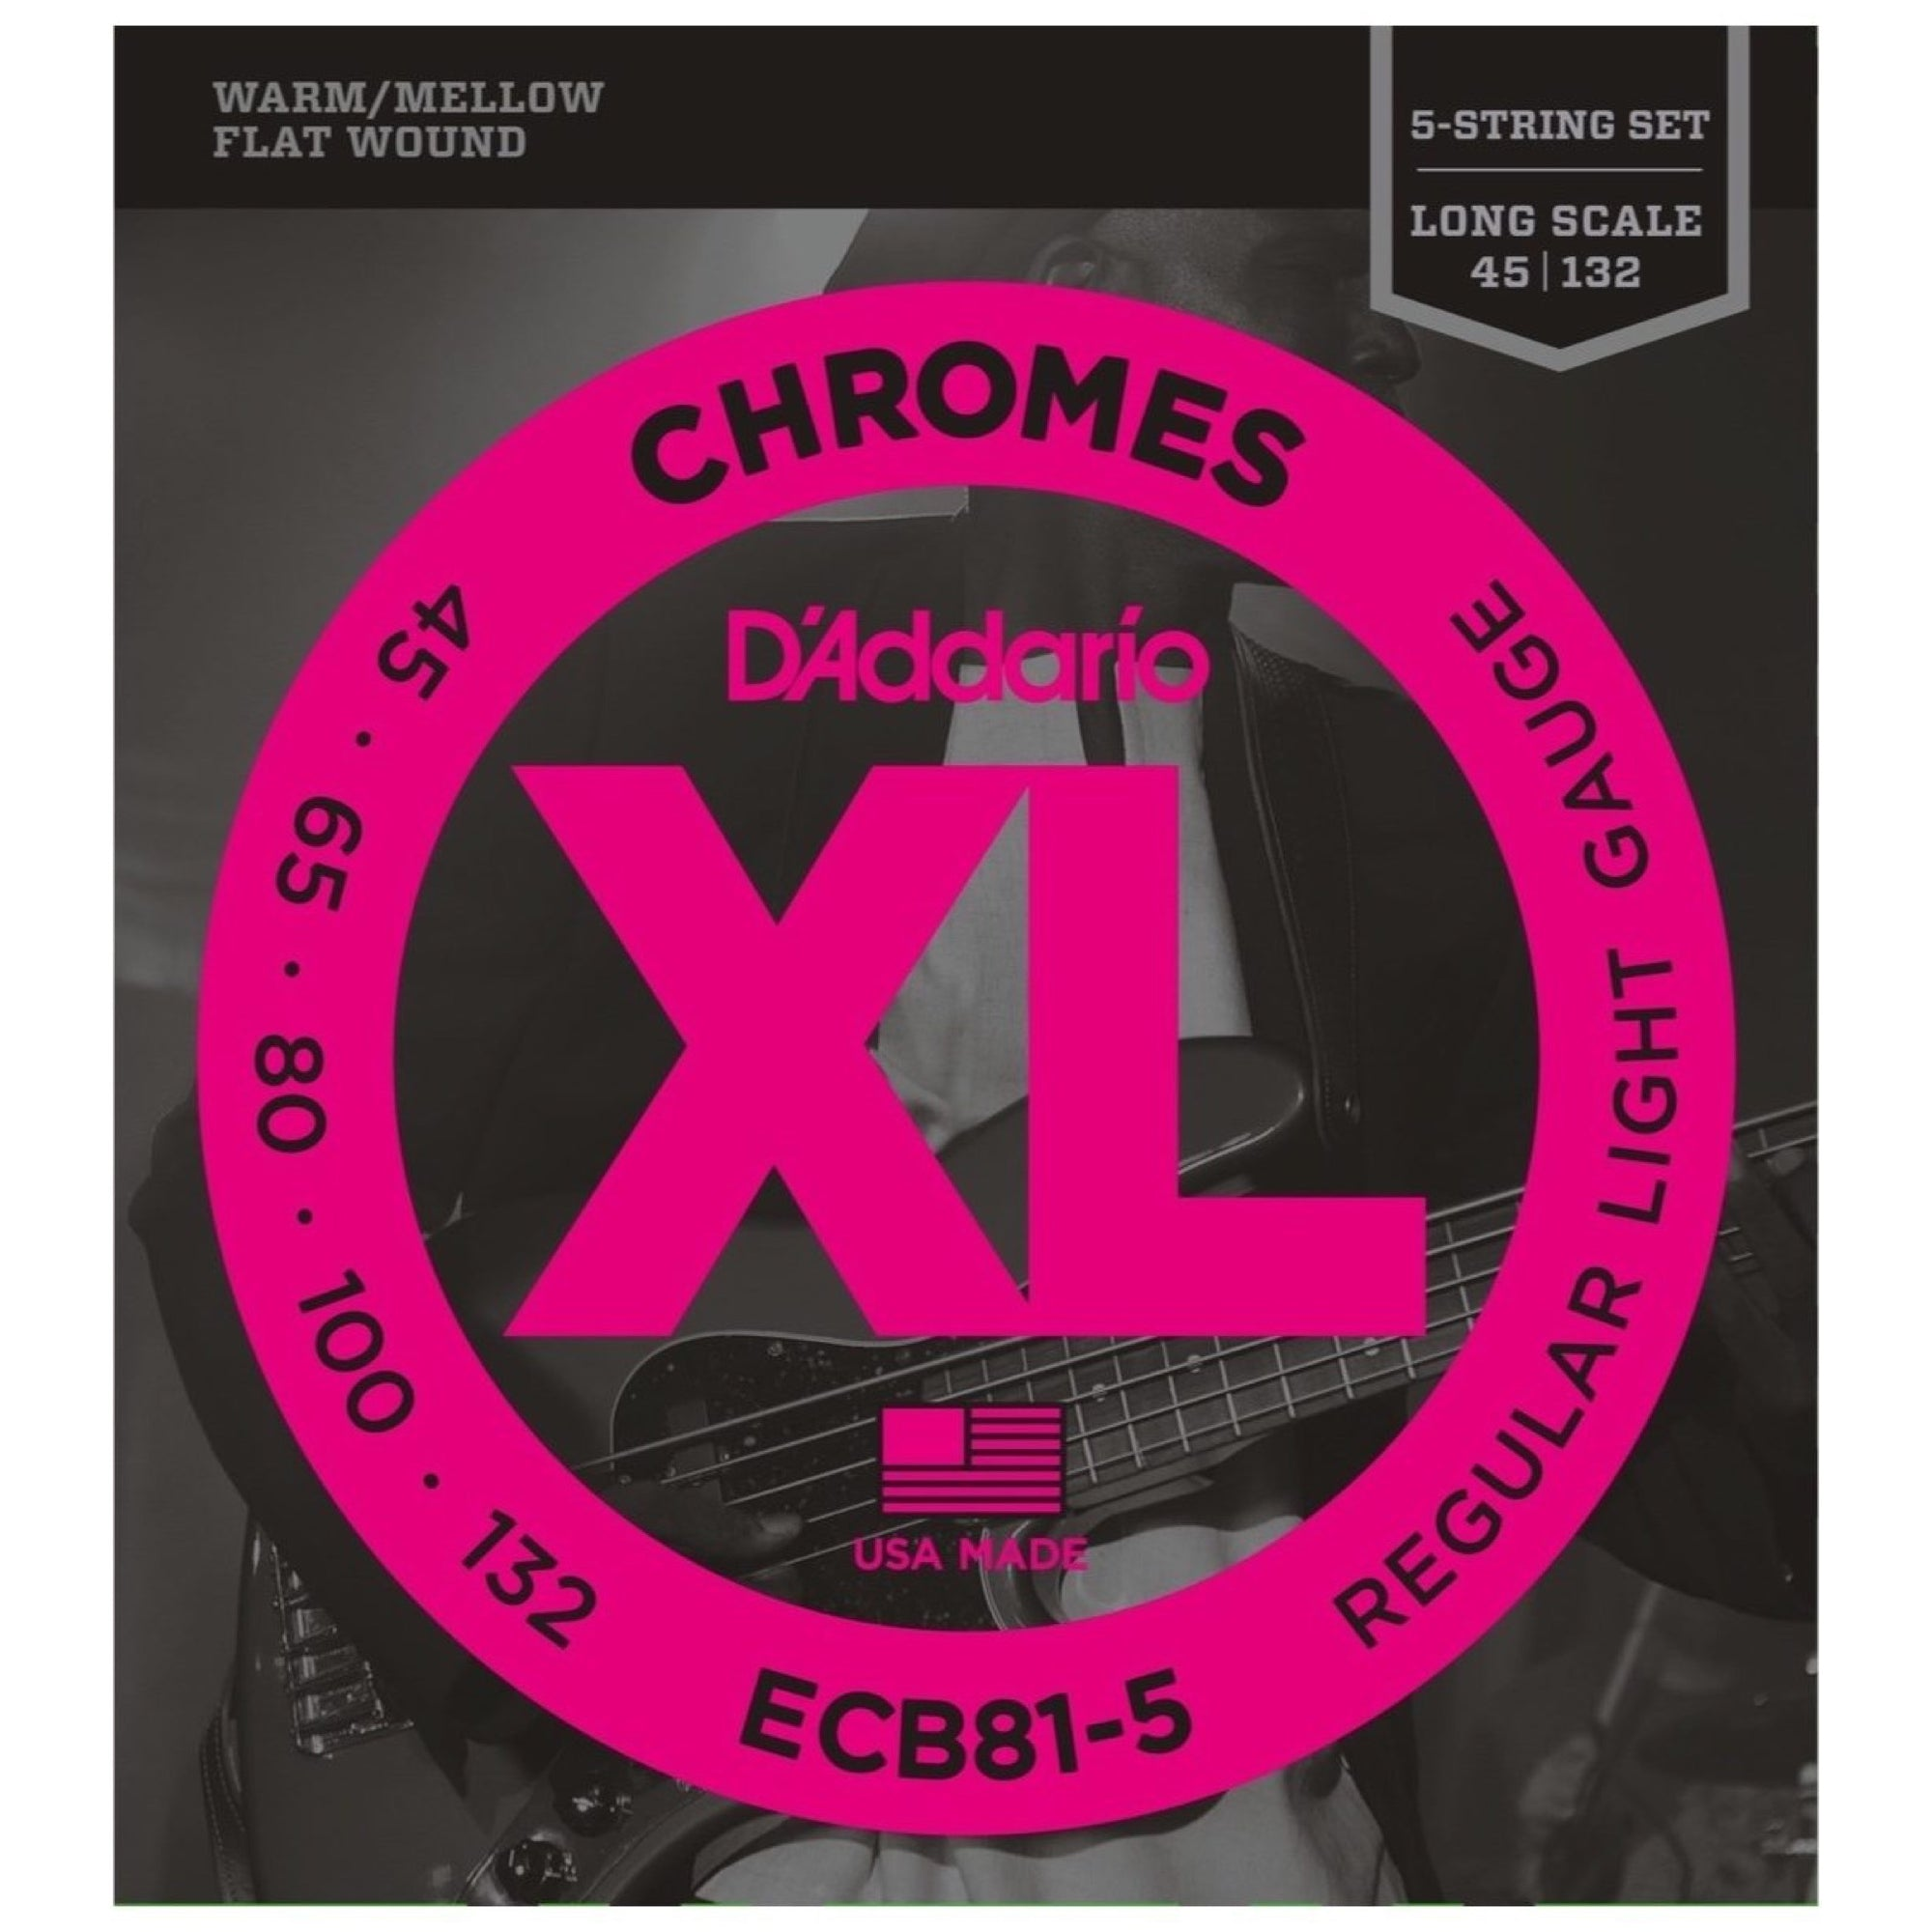 D'Addario ECB81-5 Chromes Flatwound Bass Strings (Light, 5-String, Long Scale)